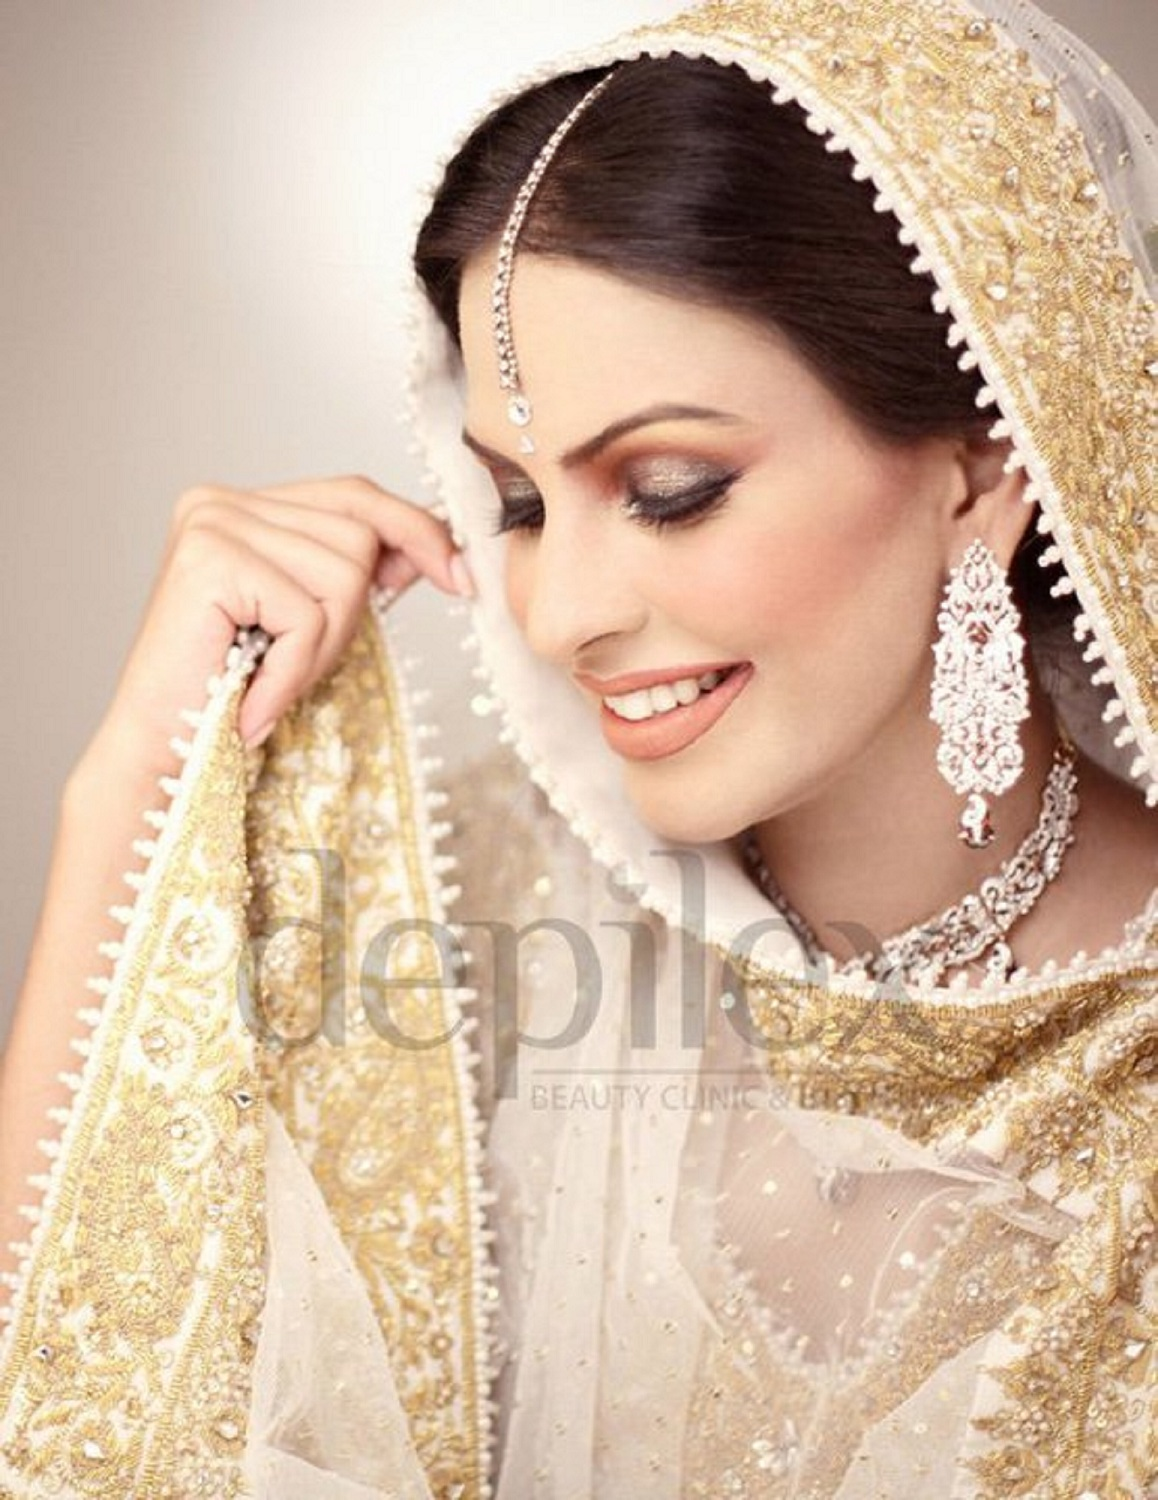 Bridals Makeover By Depilex A Beauty Clinic Amp Salon